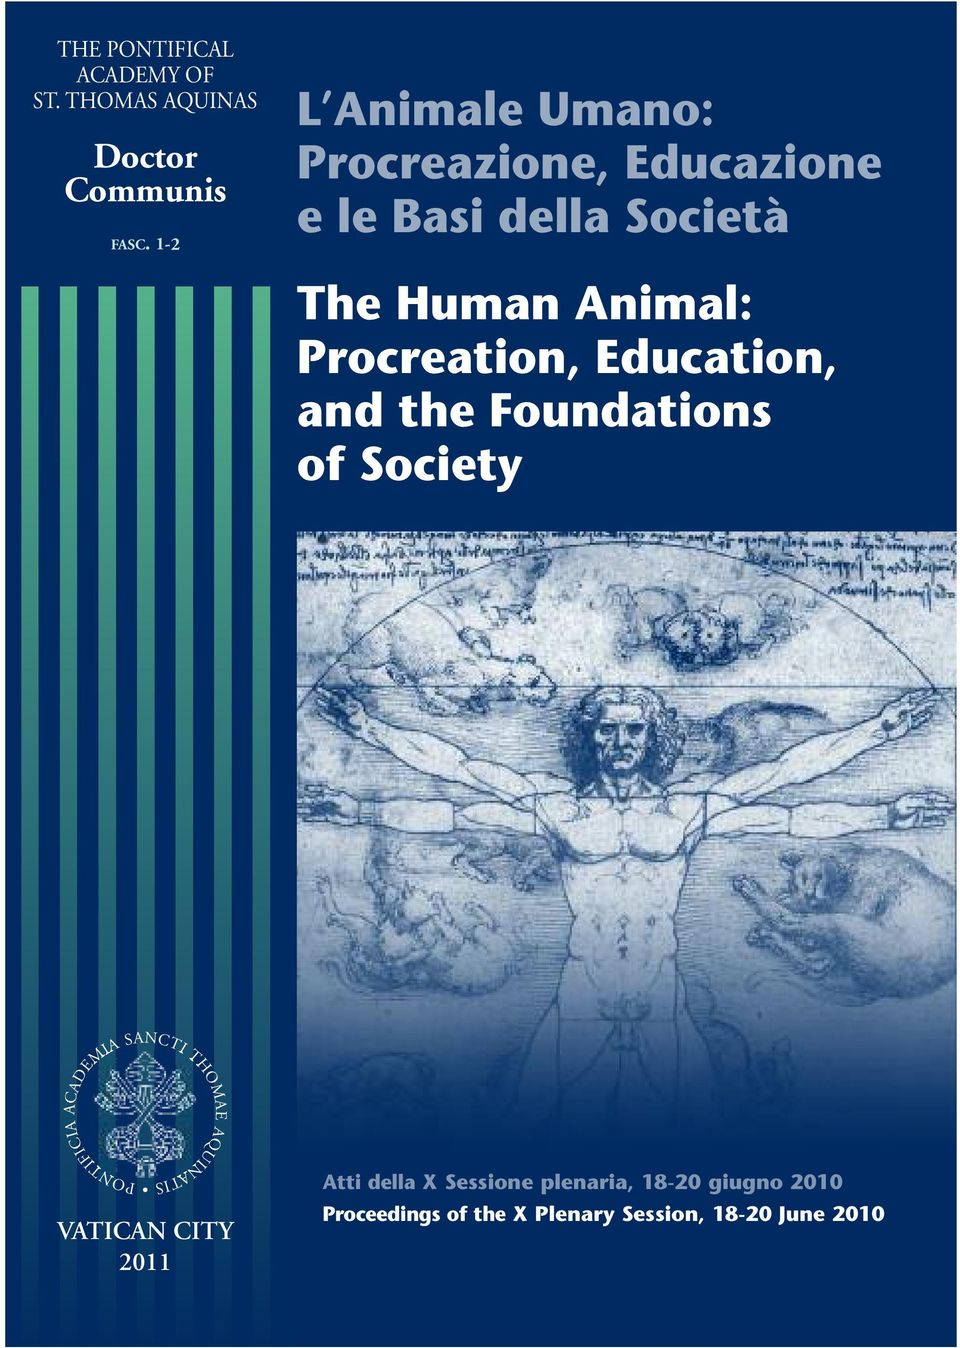 Procreation, Education, and the Foundations of Society ACADEMIA SANCTI THOMAE PONTIFICIA